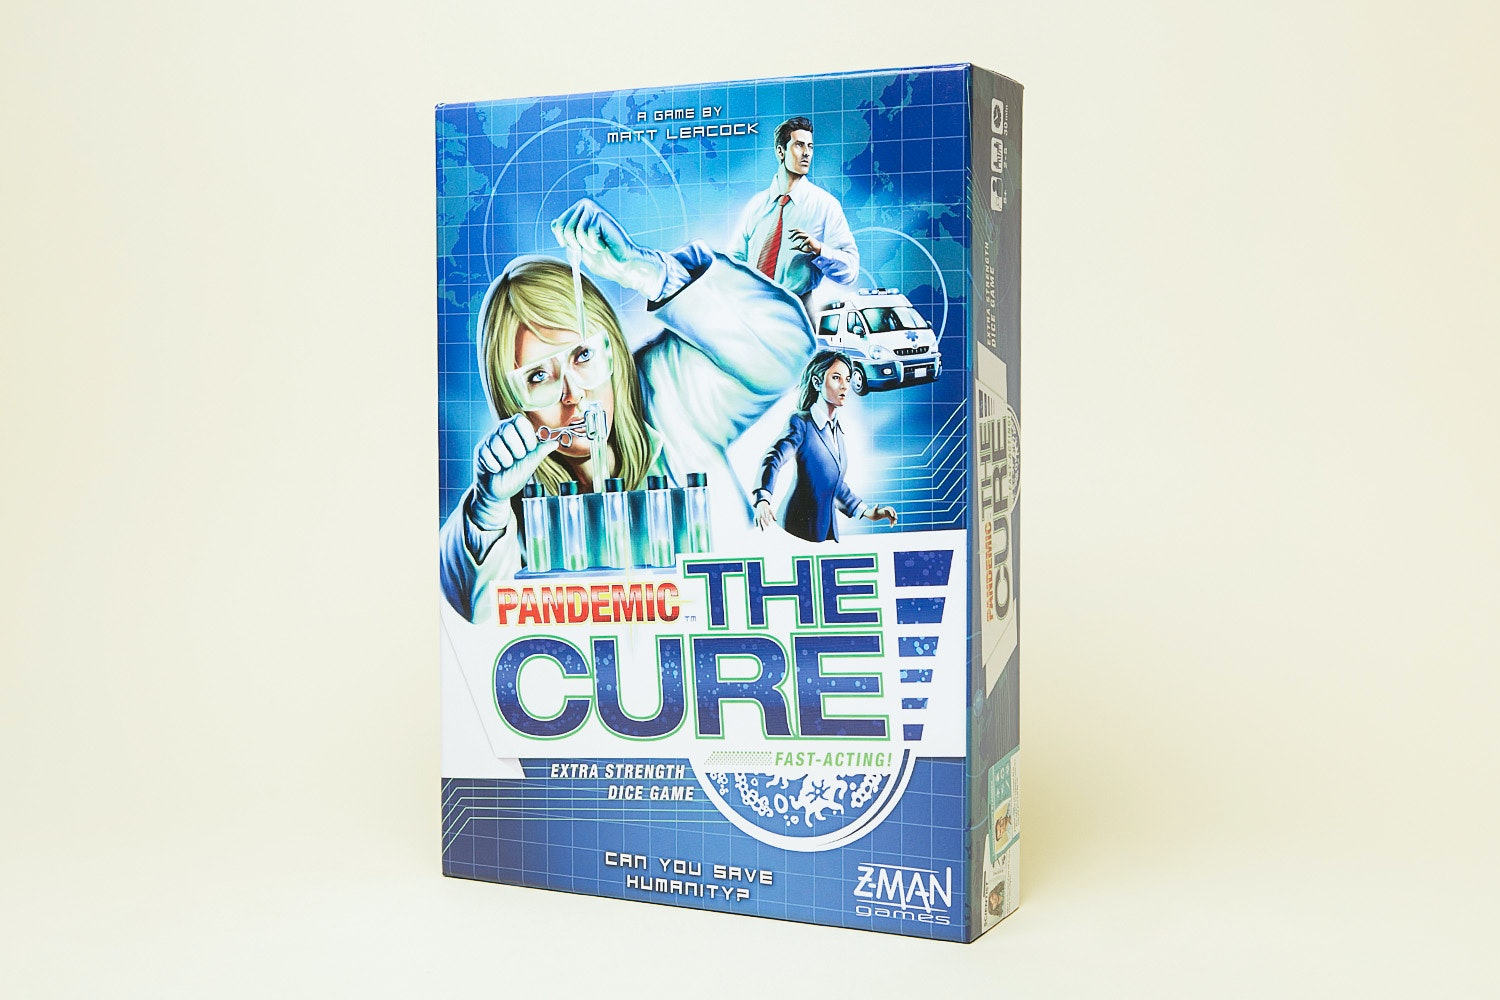 Pandemic: The Cure & Contagion Bundle